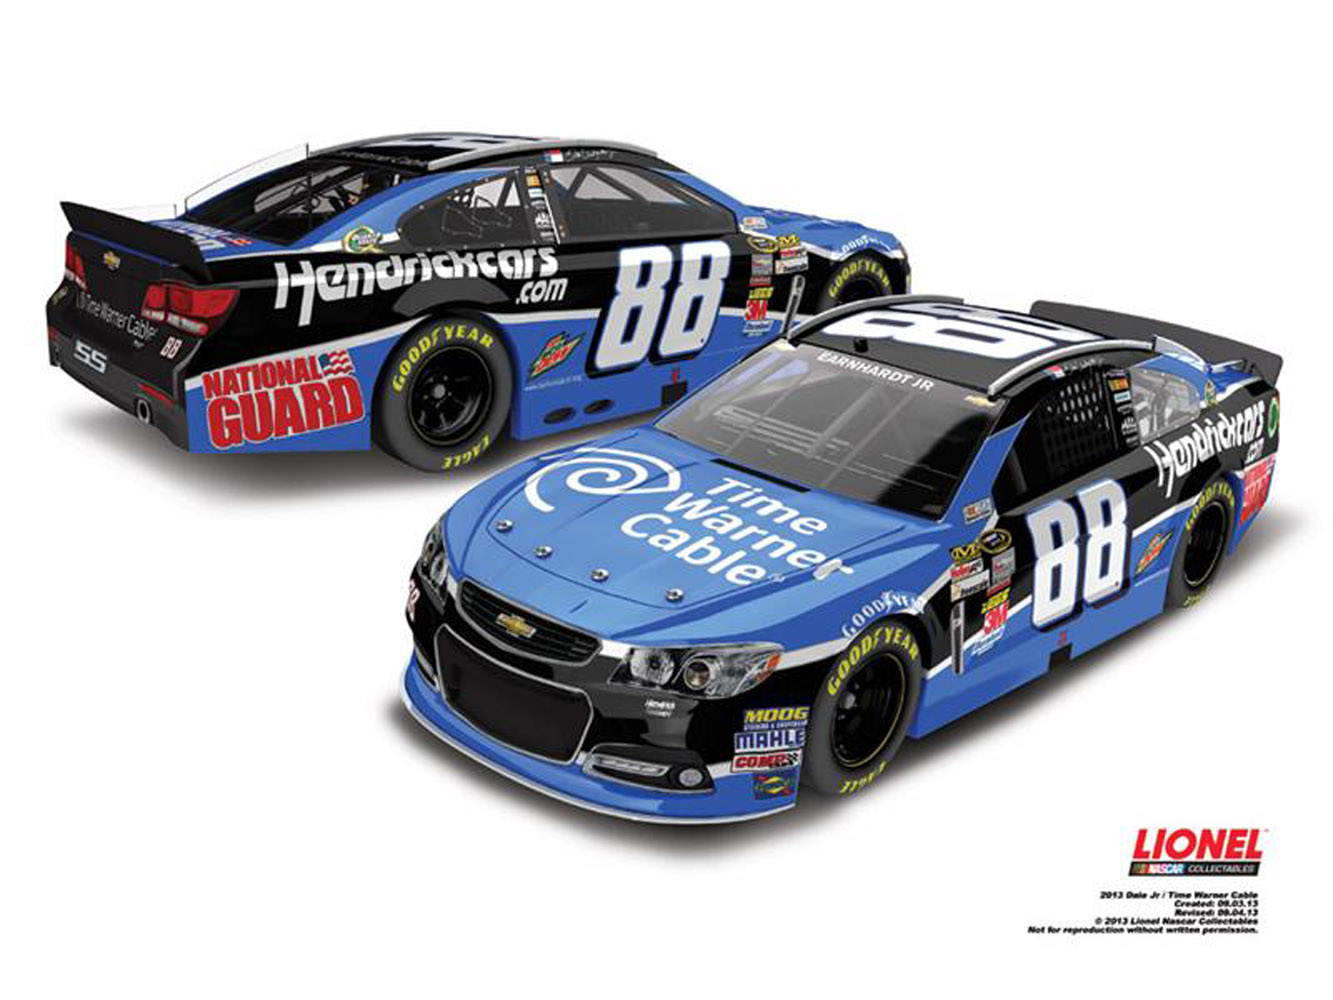 2013 Dale Earnhardt Jr  #88 Time Warner Cable 1:24 Nascar Diecast